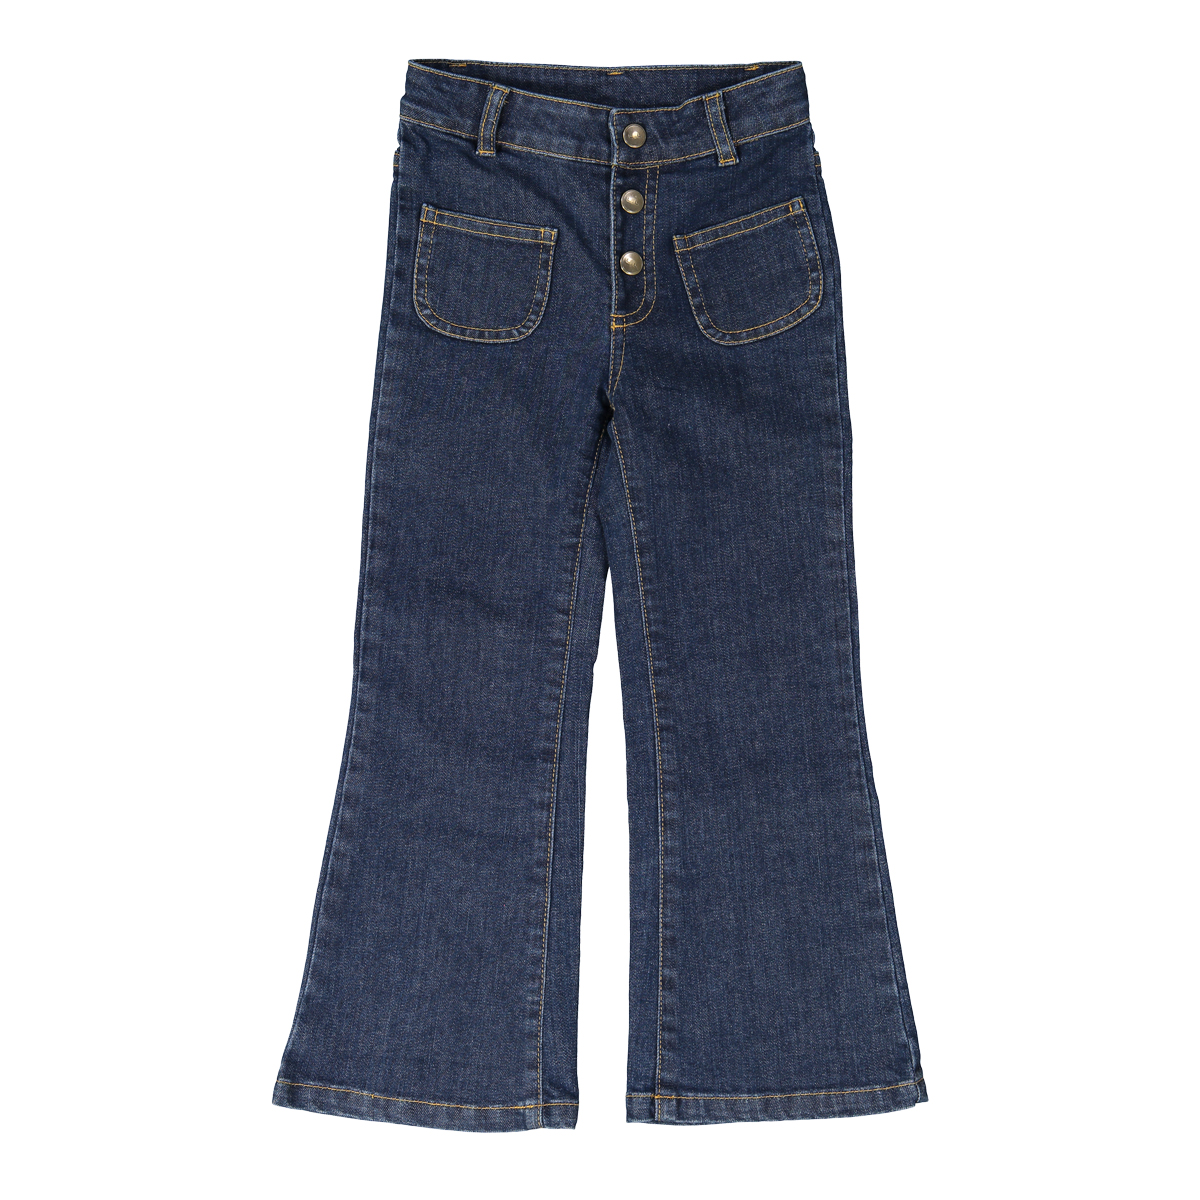 Louis Louise Christie Trouser in Blue Denim